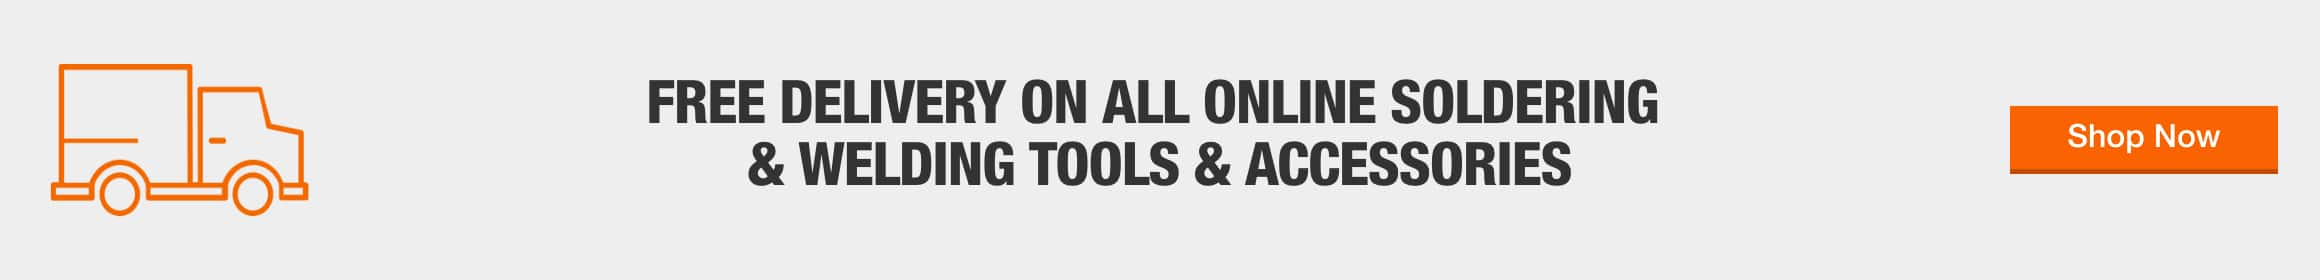 Free Delivery On All Online Soldering & Welding Tools & Accessories